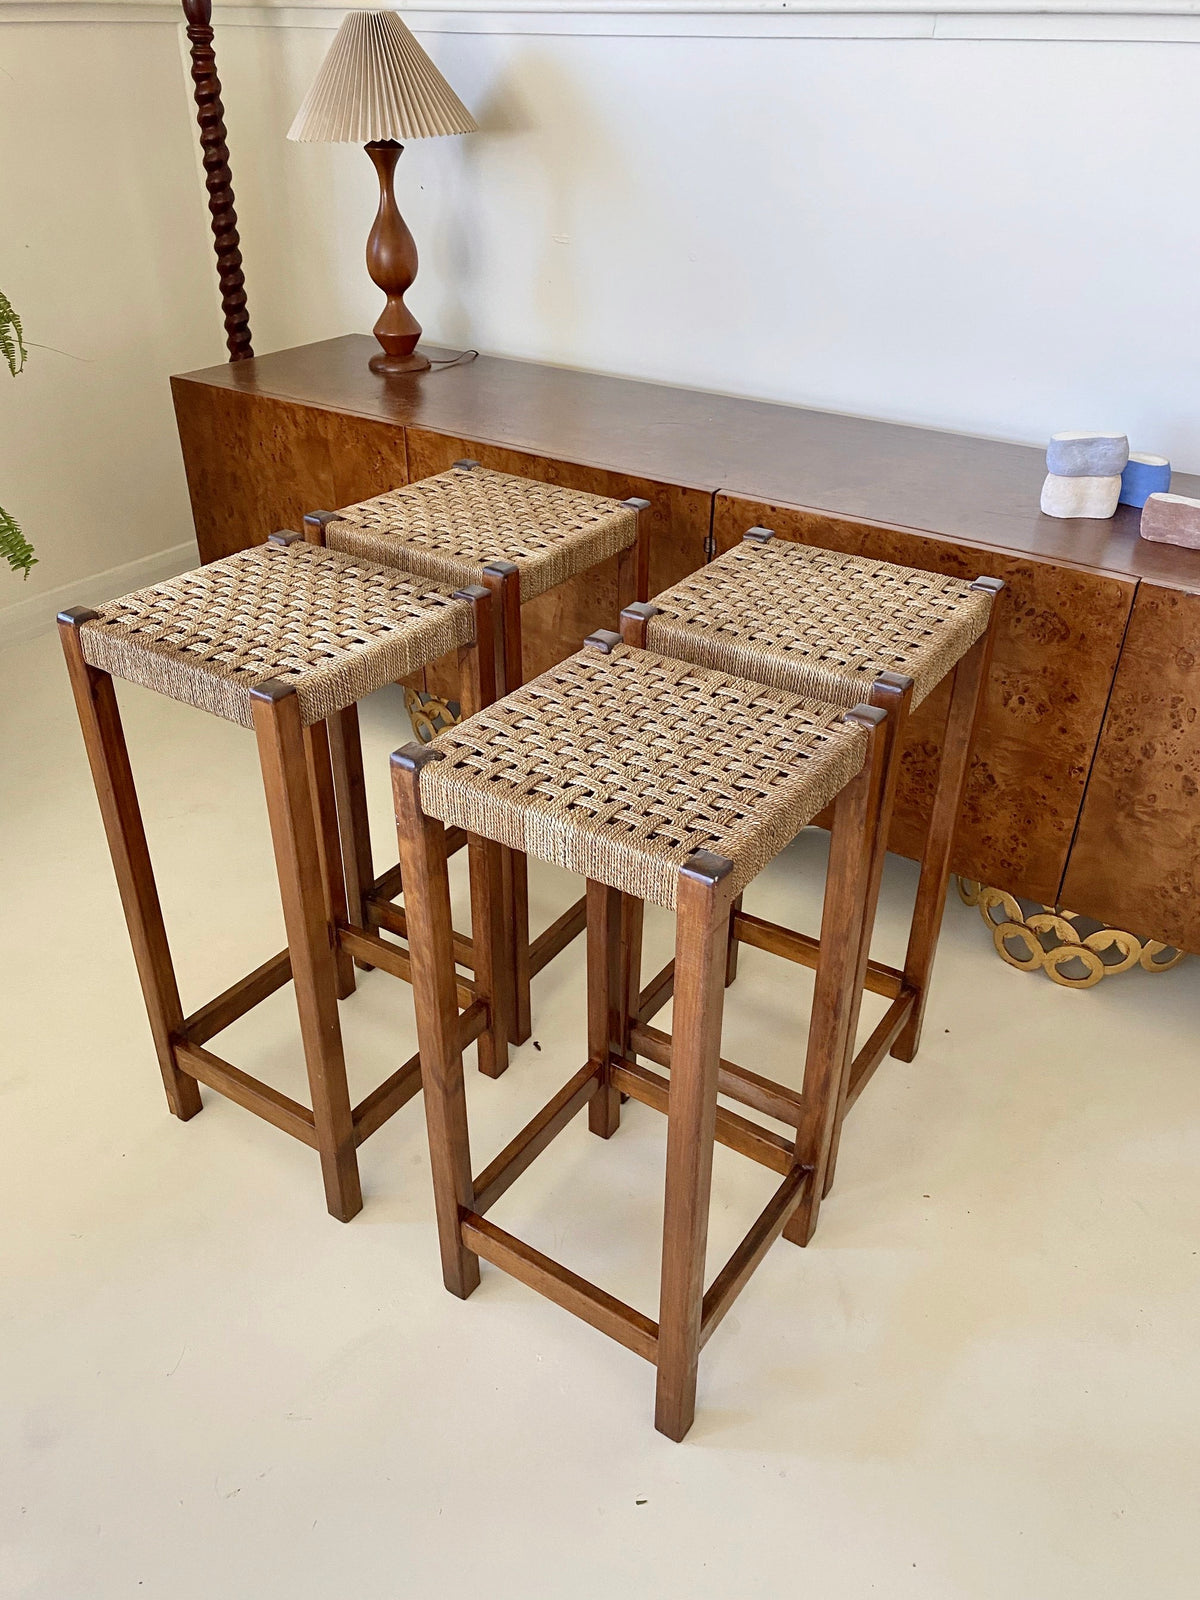 Set of Vintage Timber & Woven Kitchen Stools